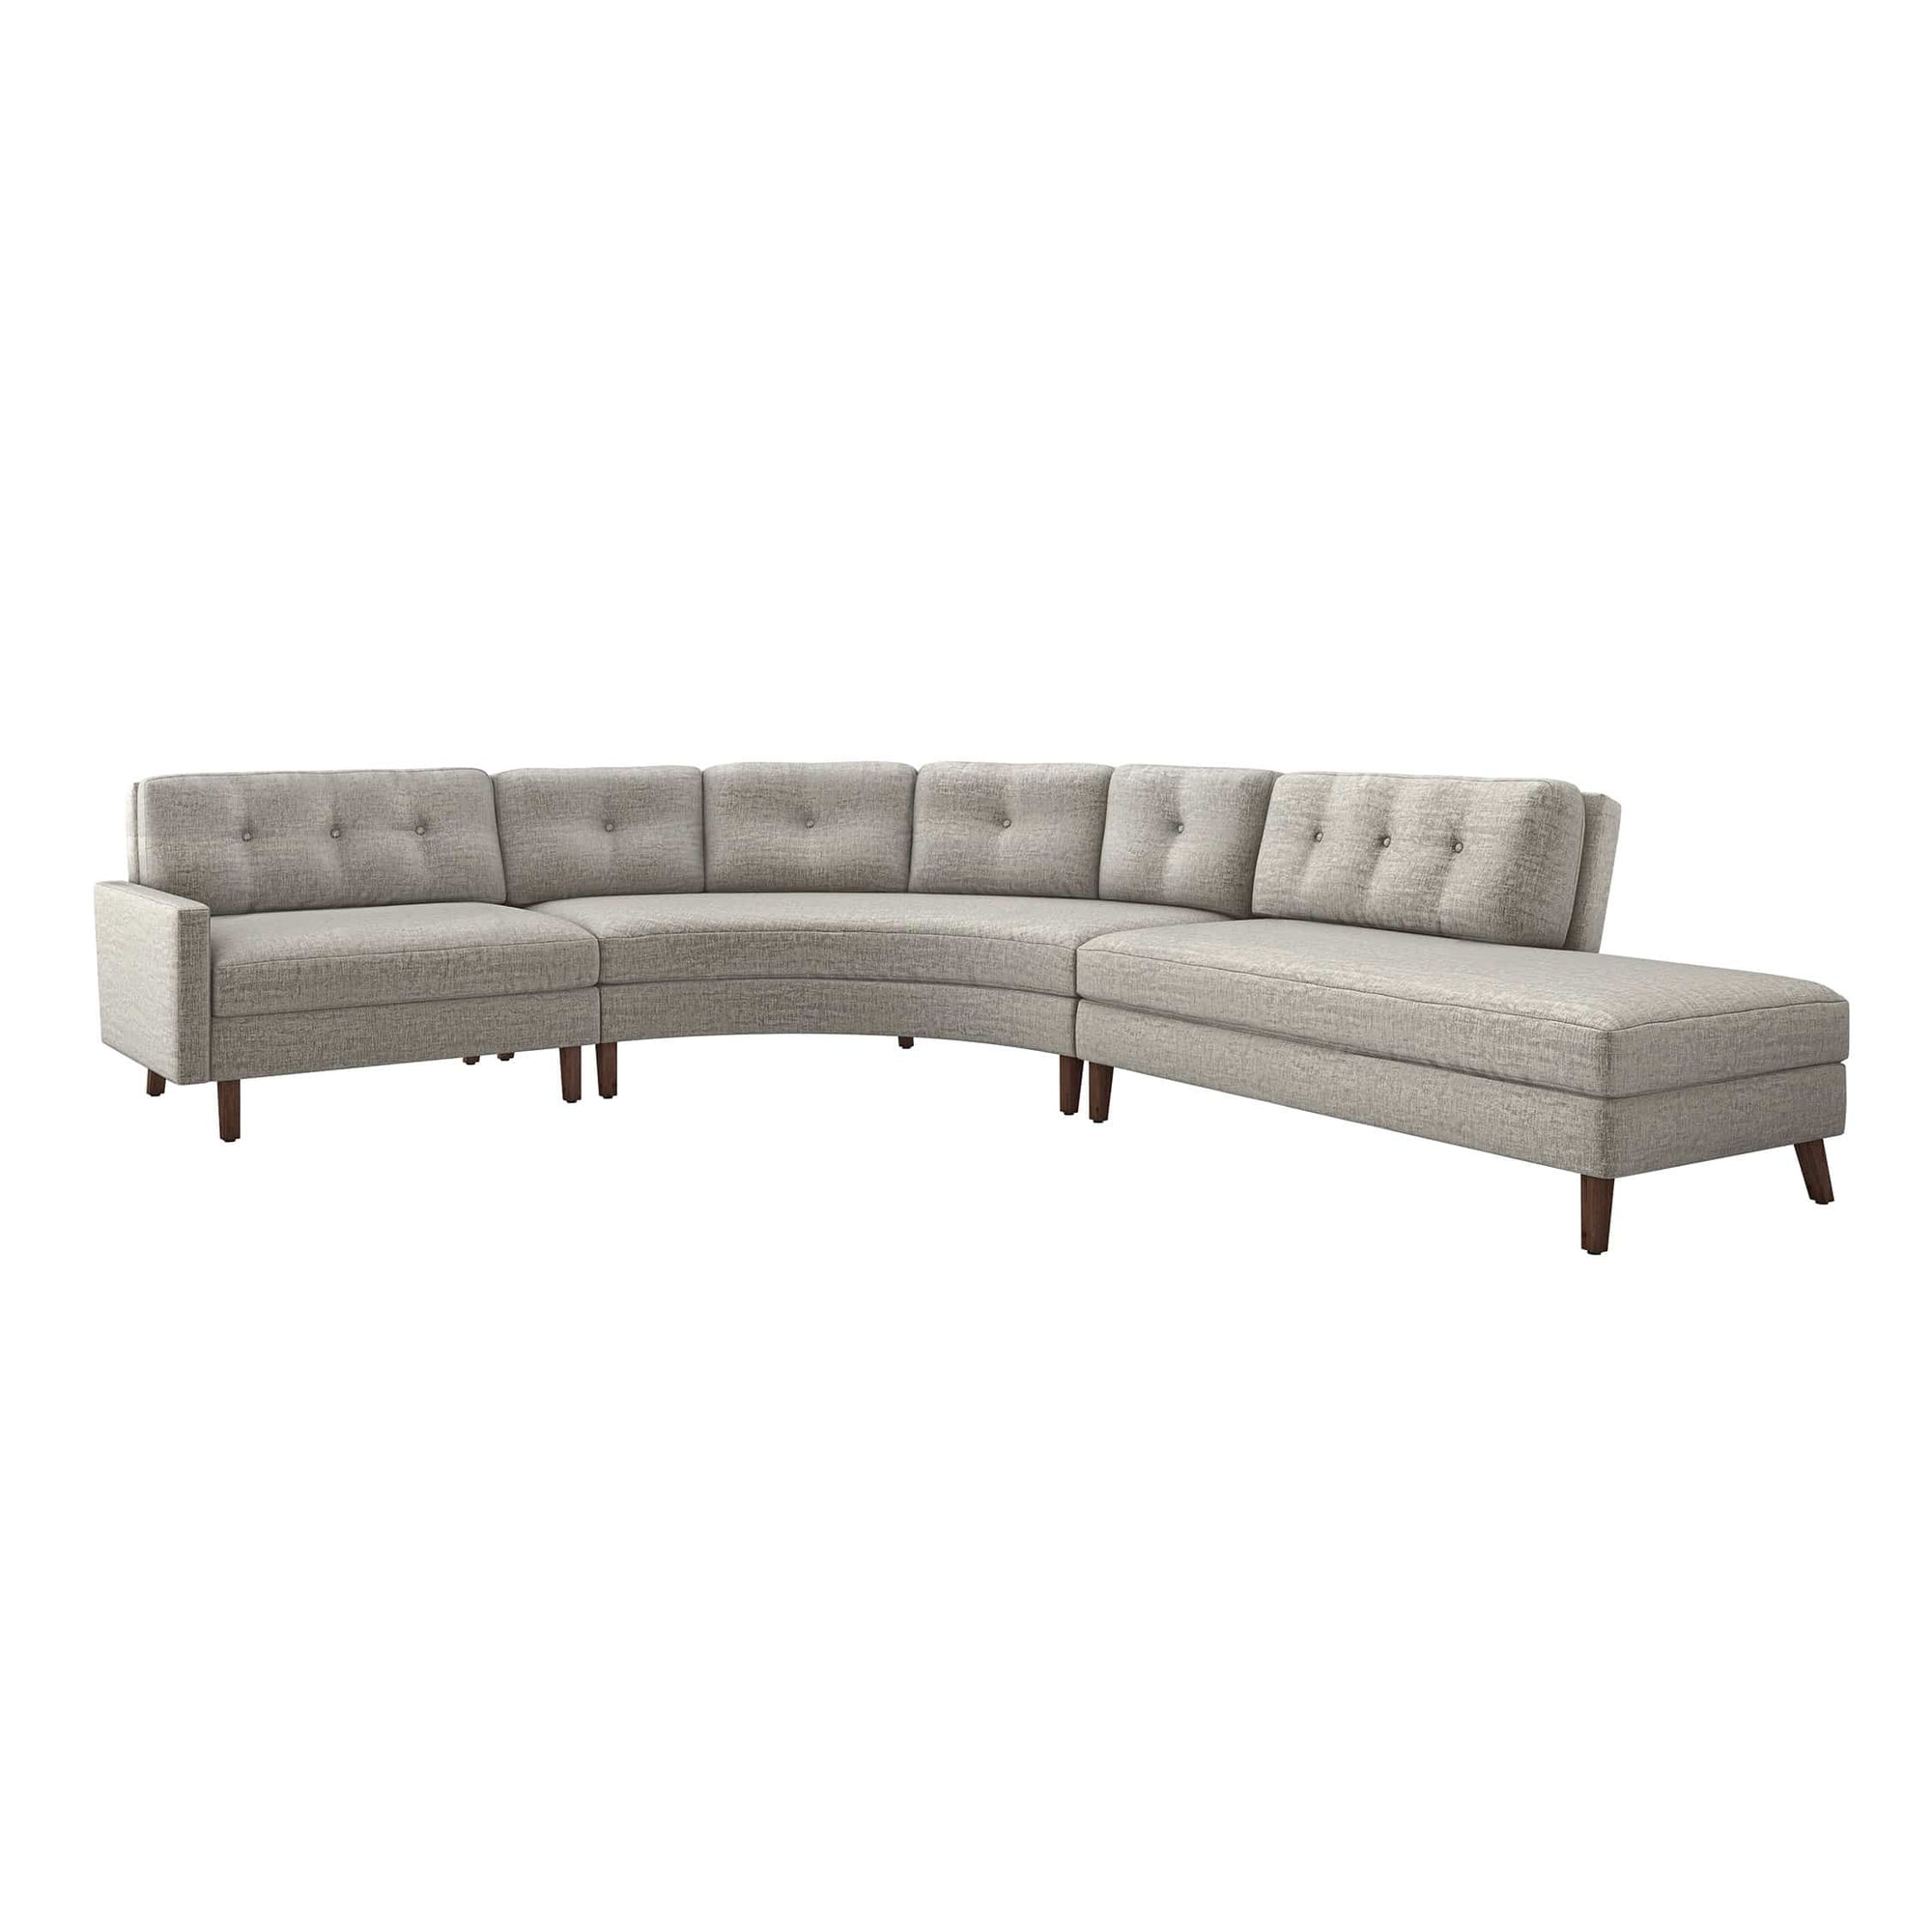 Interlude Home Interlude Home Aventura Right Chaise 3 Piece Sectional - Feather Gray 199021-4